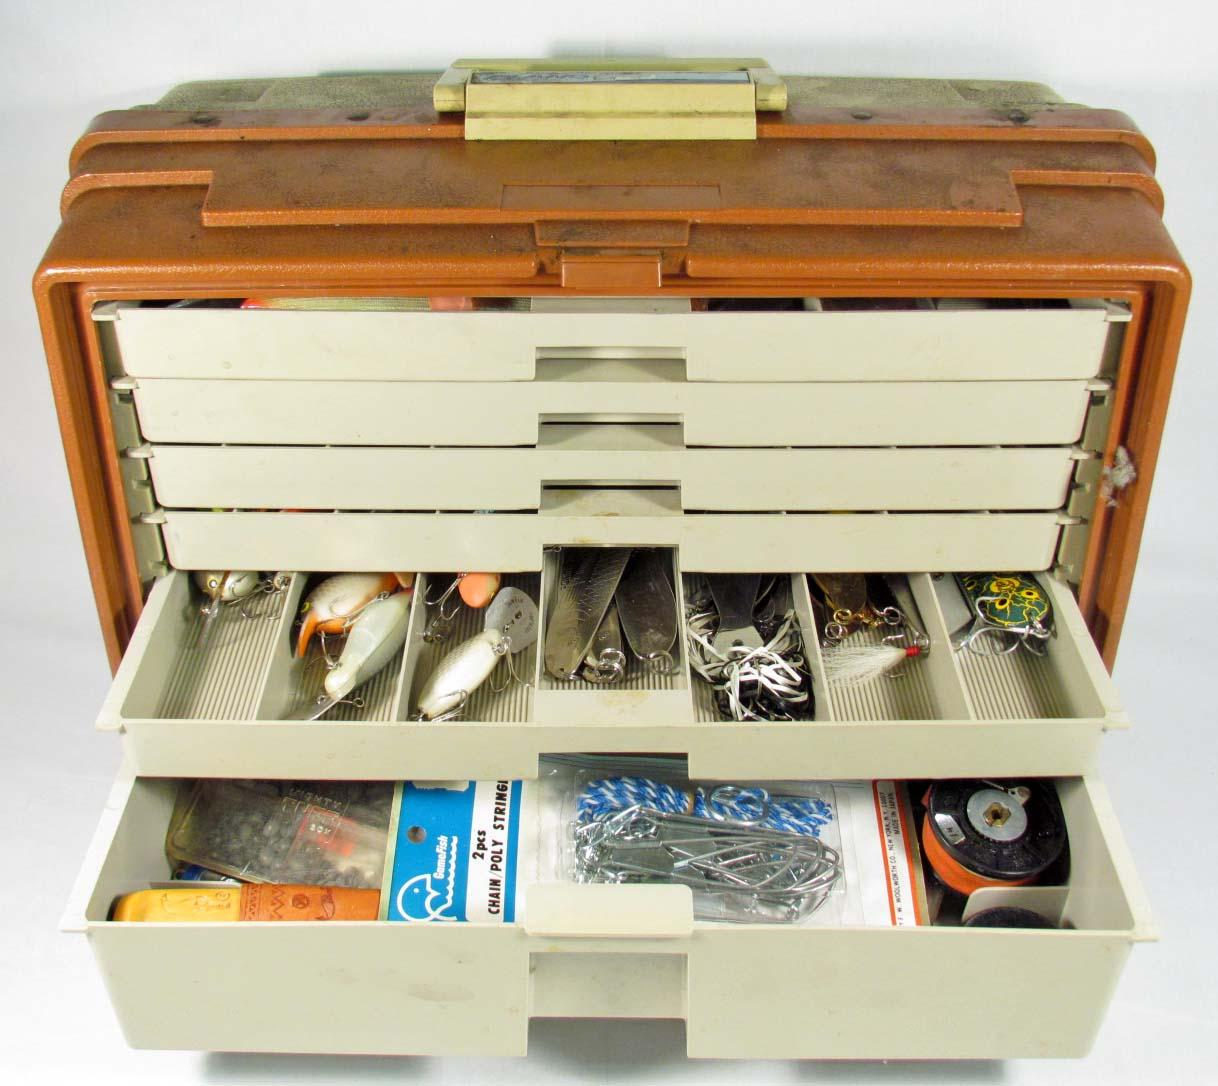 Fishing tackle boxes driverlayer search engine for Best fishing tackle box